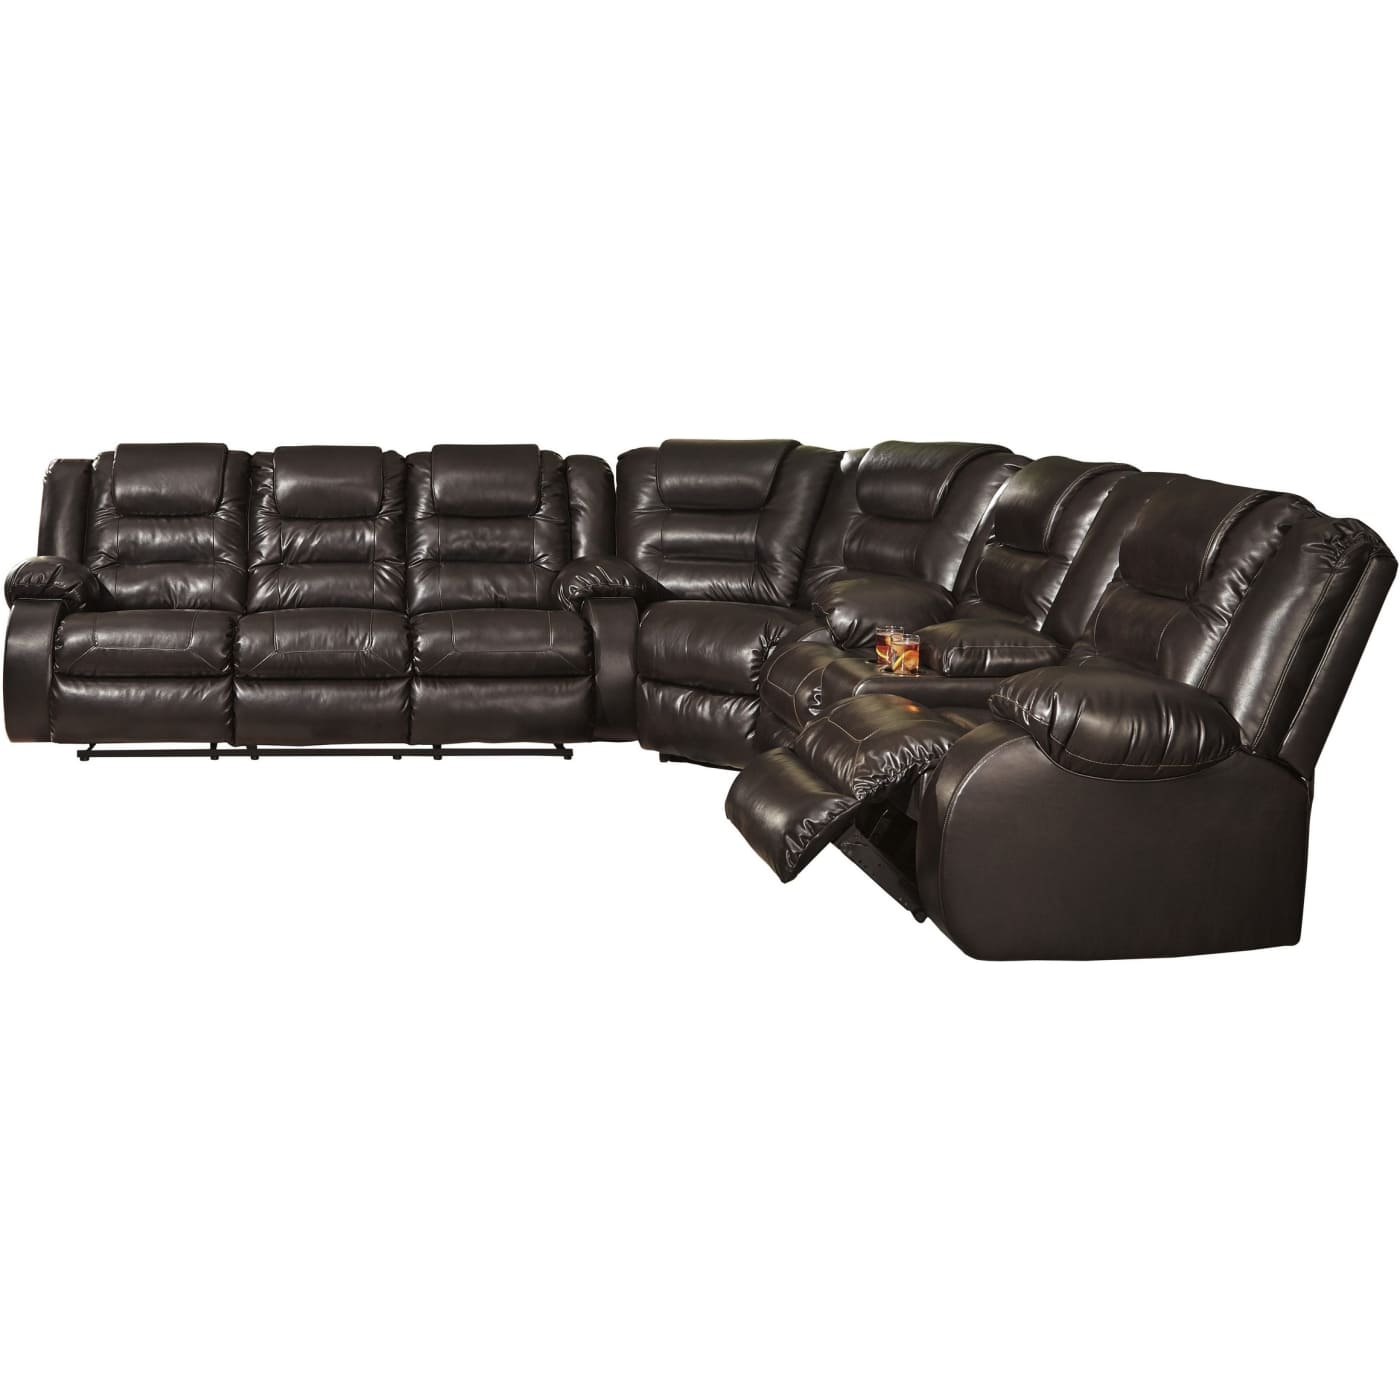 Signature Design by Ashley Vacherie Chocolate 3 Piece Living Room ...